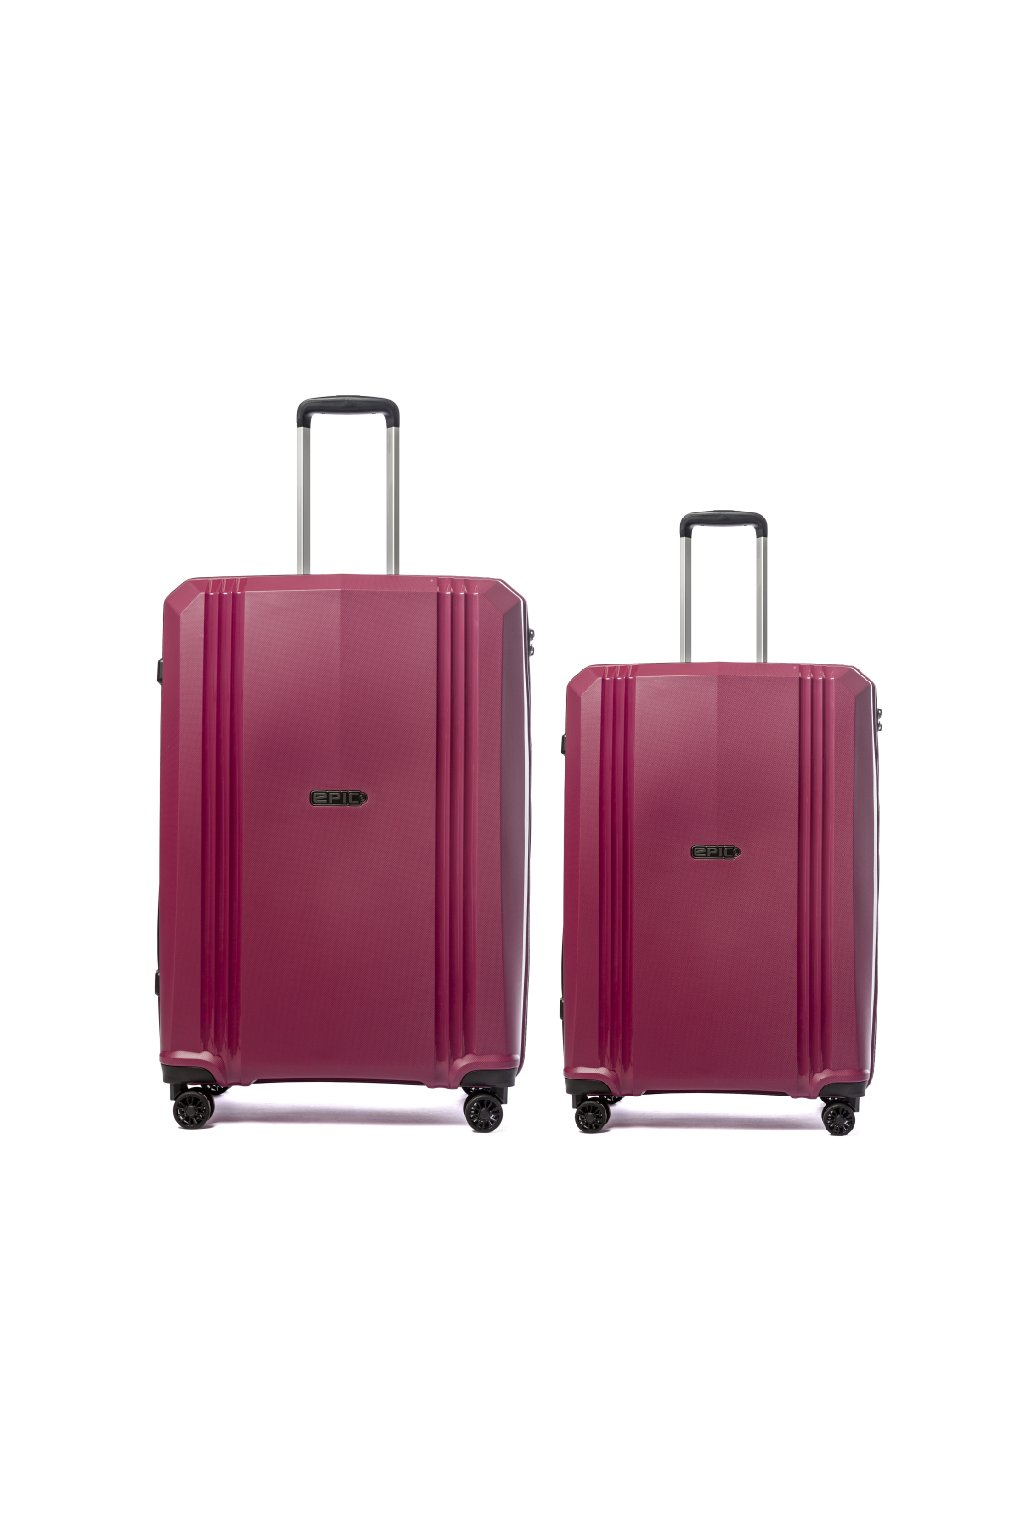 kufrland epic airwave plum (24)